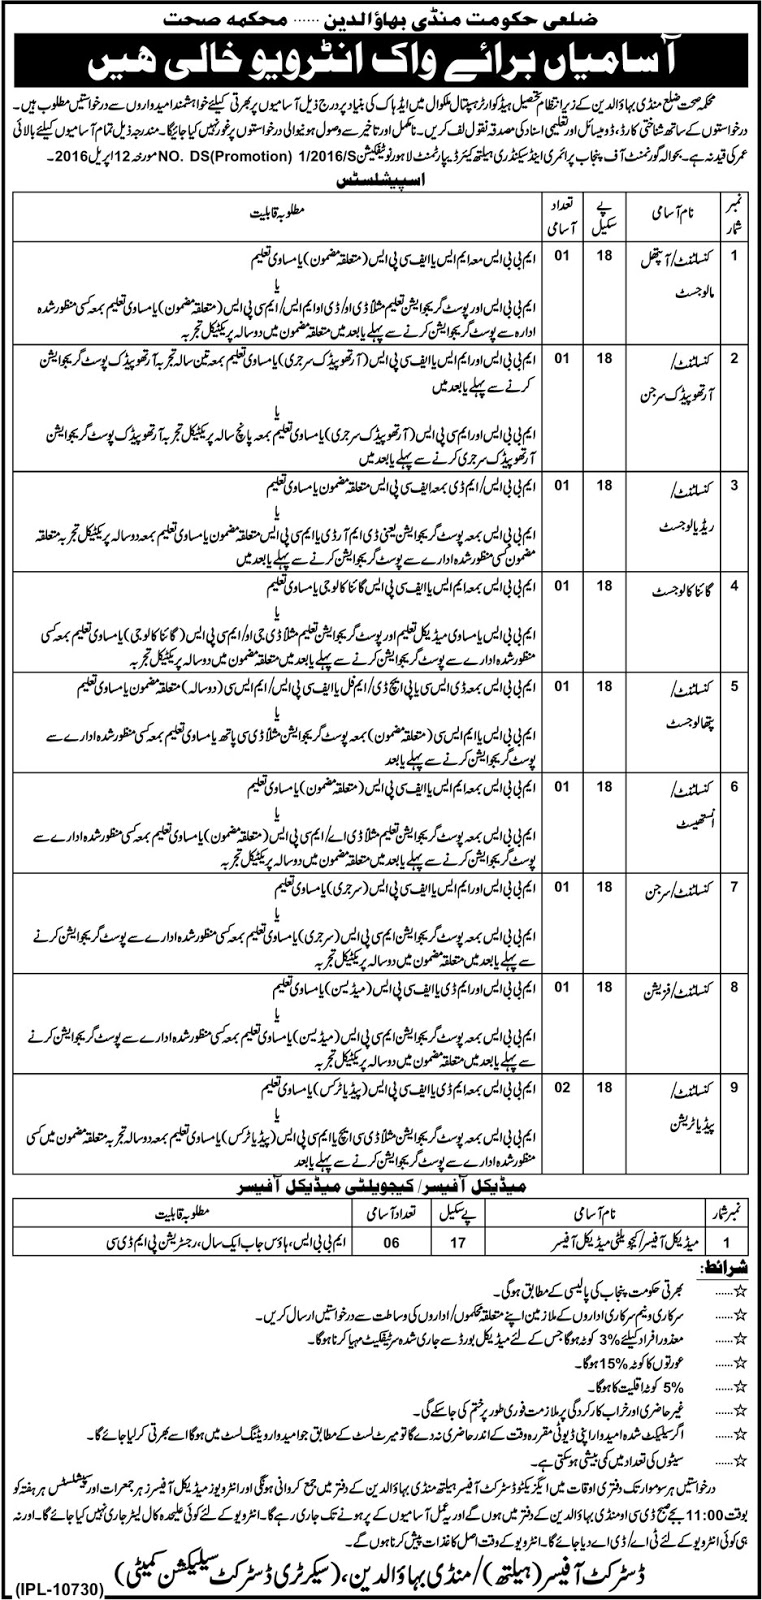 Doctors Jobs in Mandi Baha Uddin JObs 2016